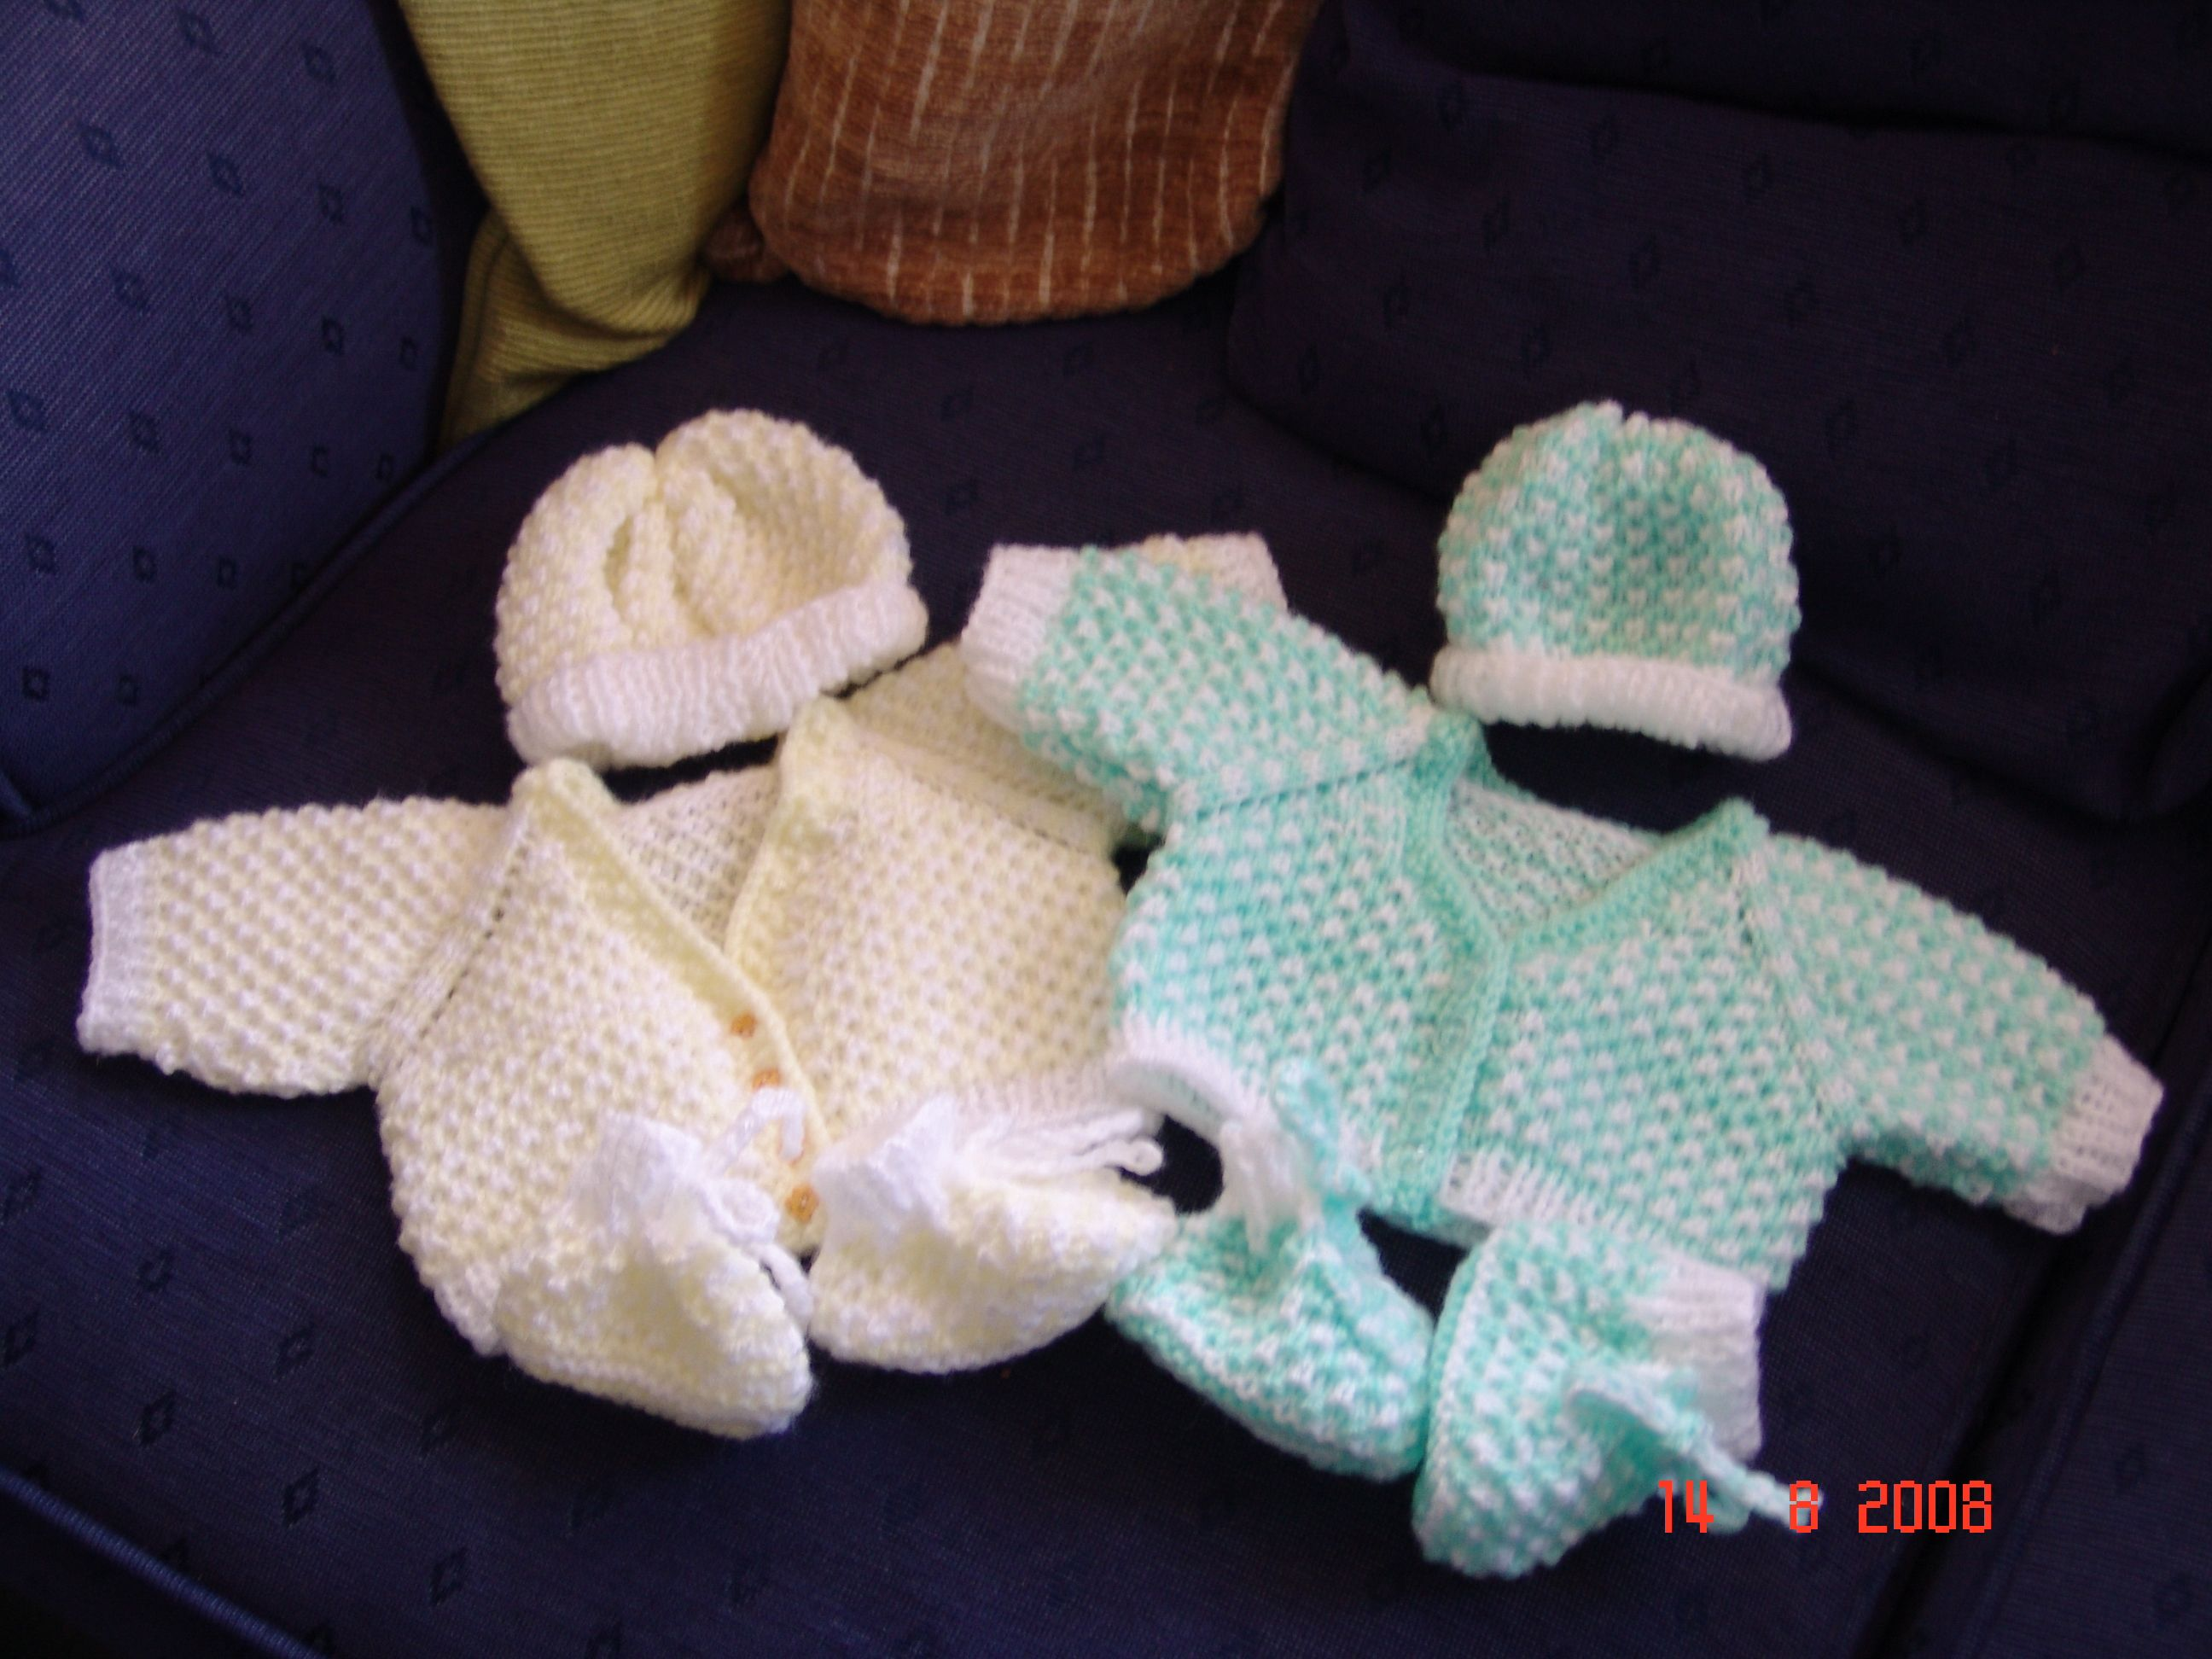 Free patterns free pattern bliss and bees free patterns crochet patternsbaby patternsfree newborn knitting bankloansurffo Choice Image